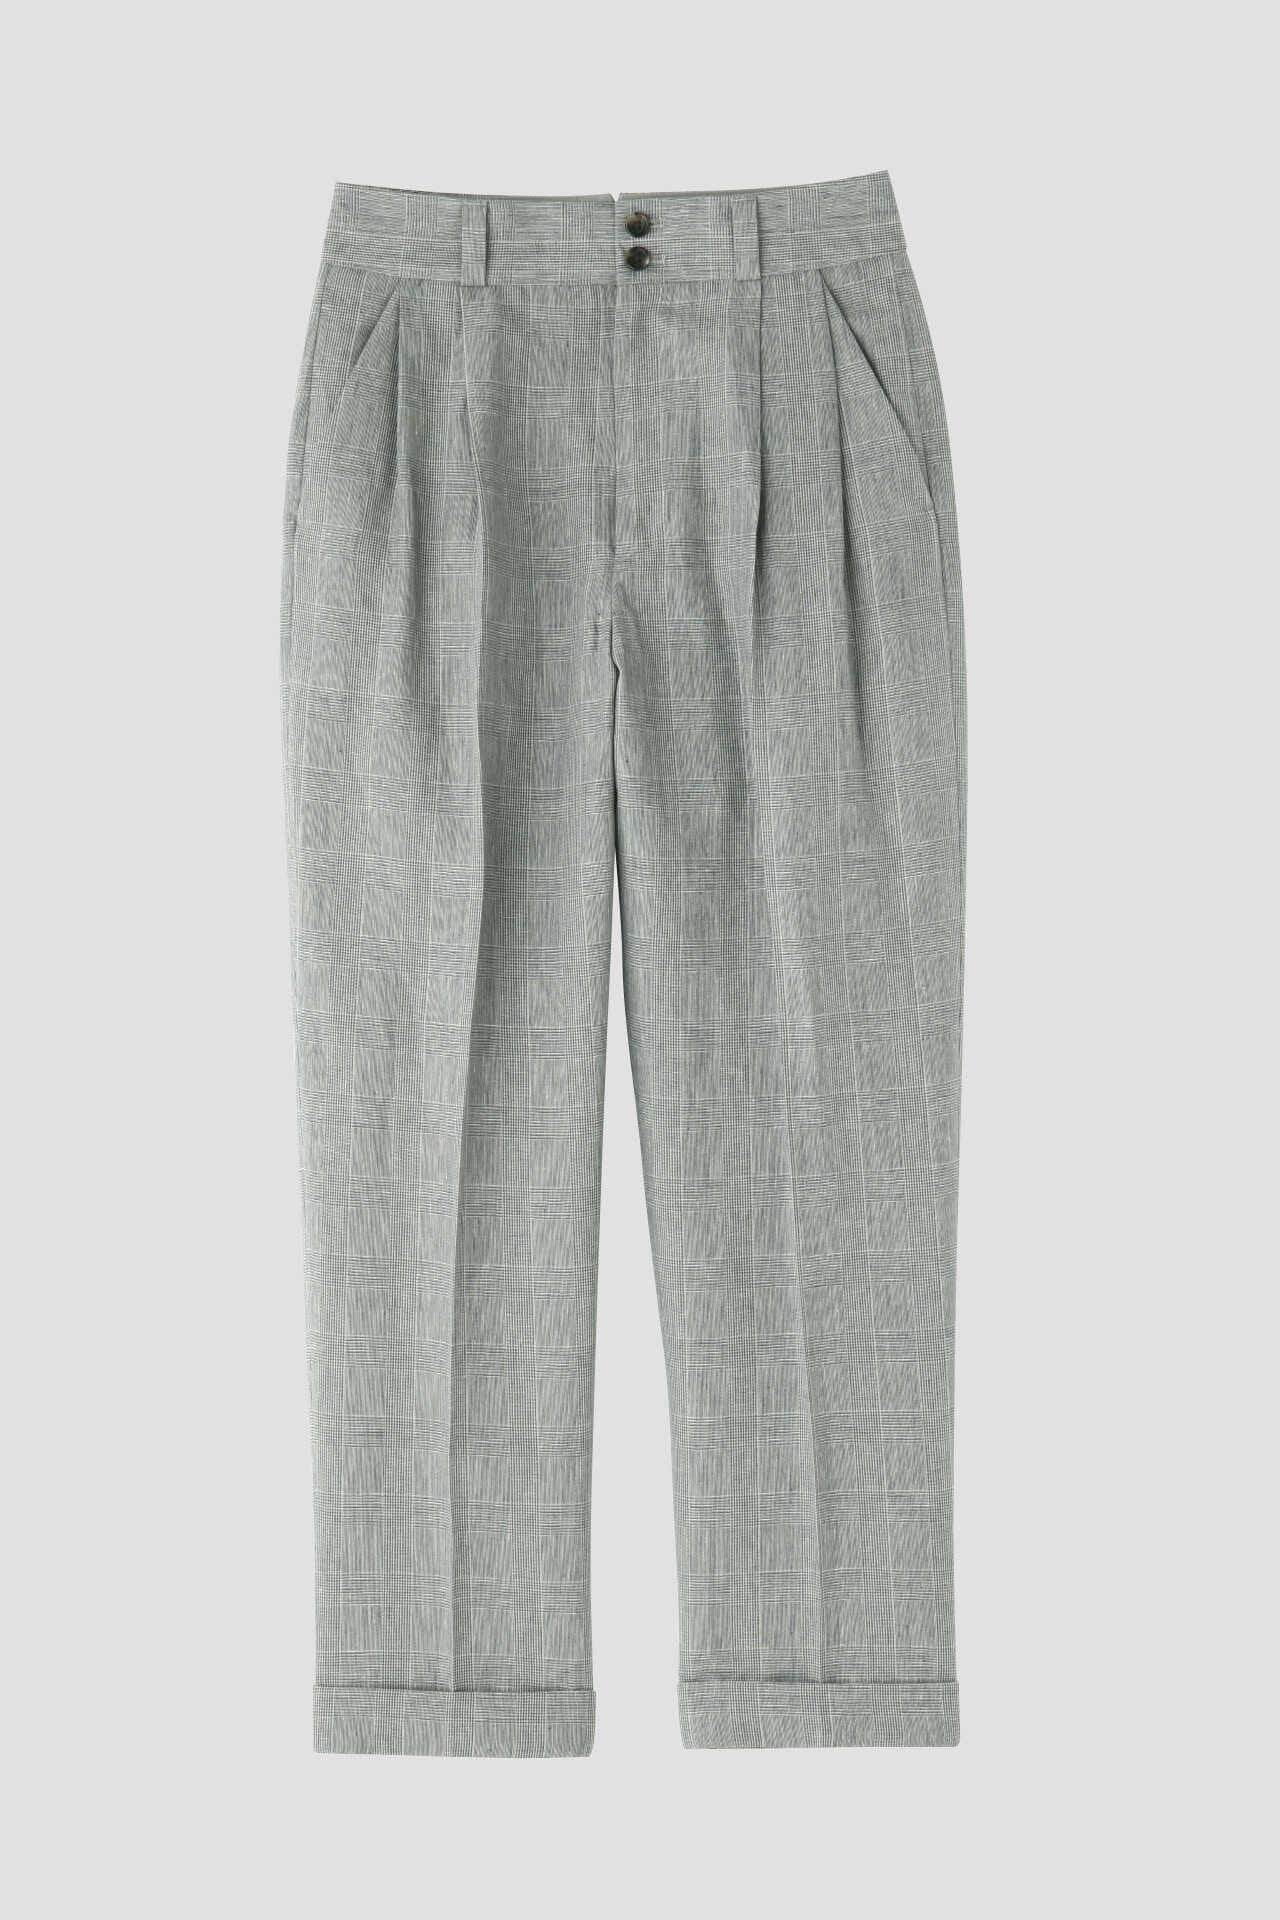 PRINCE OF WALES LINEN1